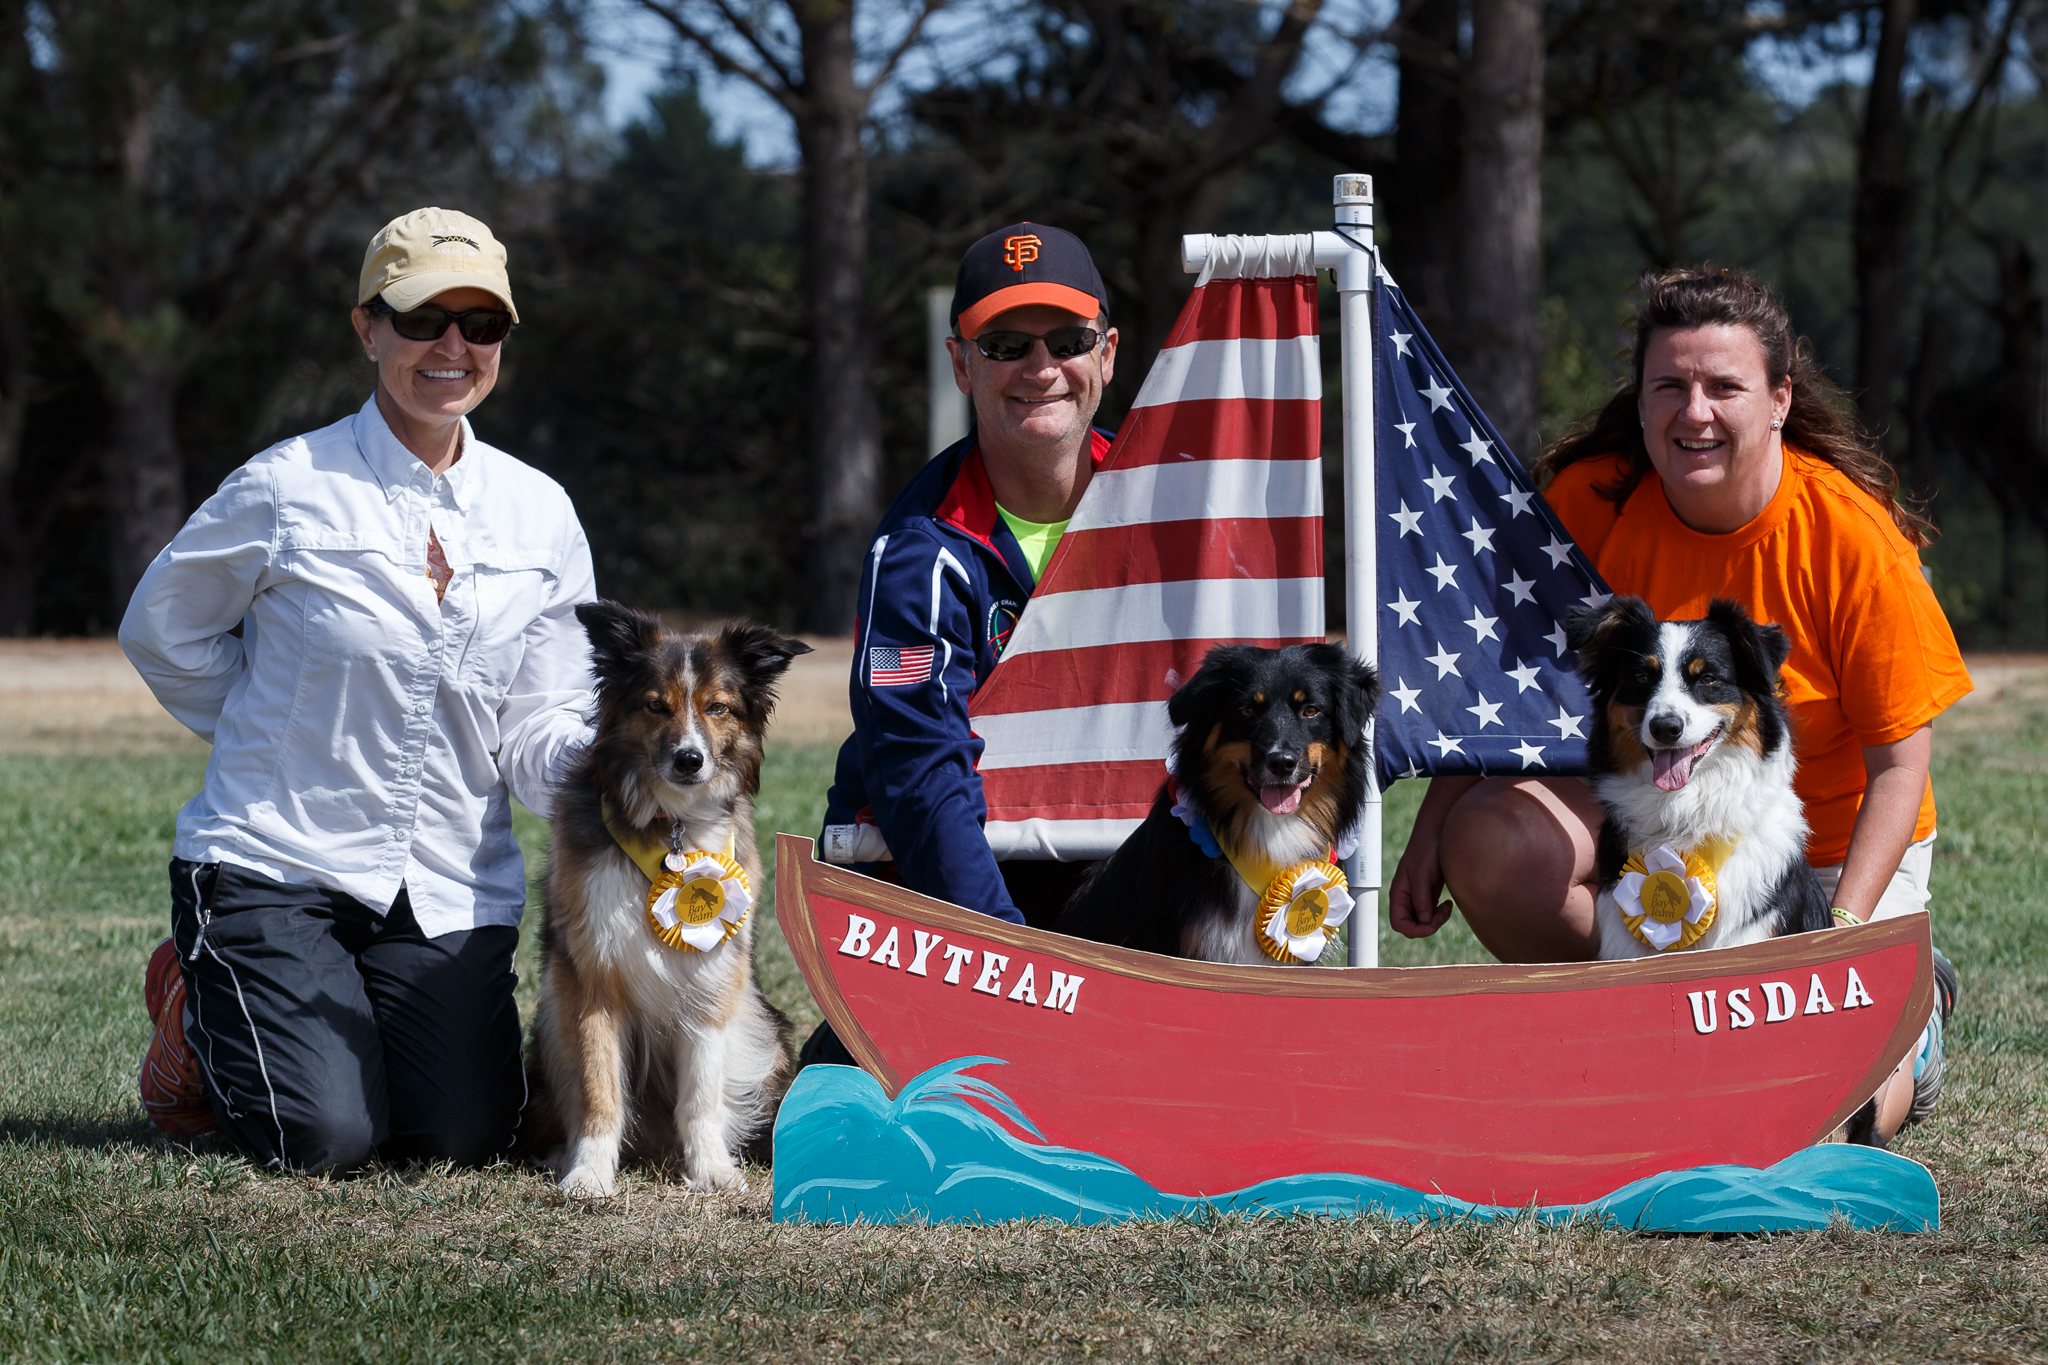 Thanks to Ivette White for the photo! (L to R: Carol & Deenie, Dave & Boca, Erika & Cadence)